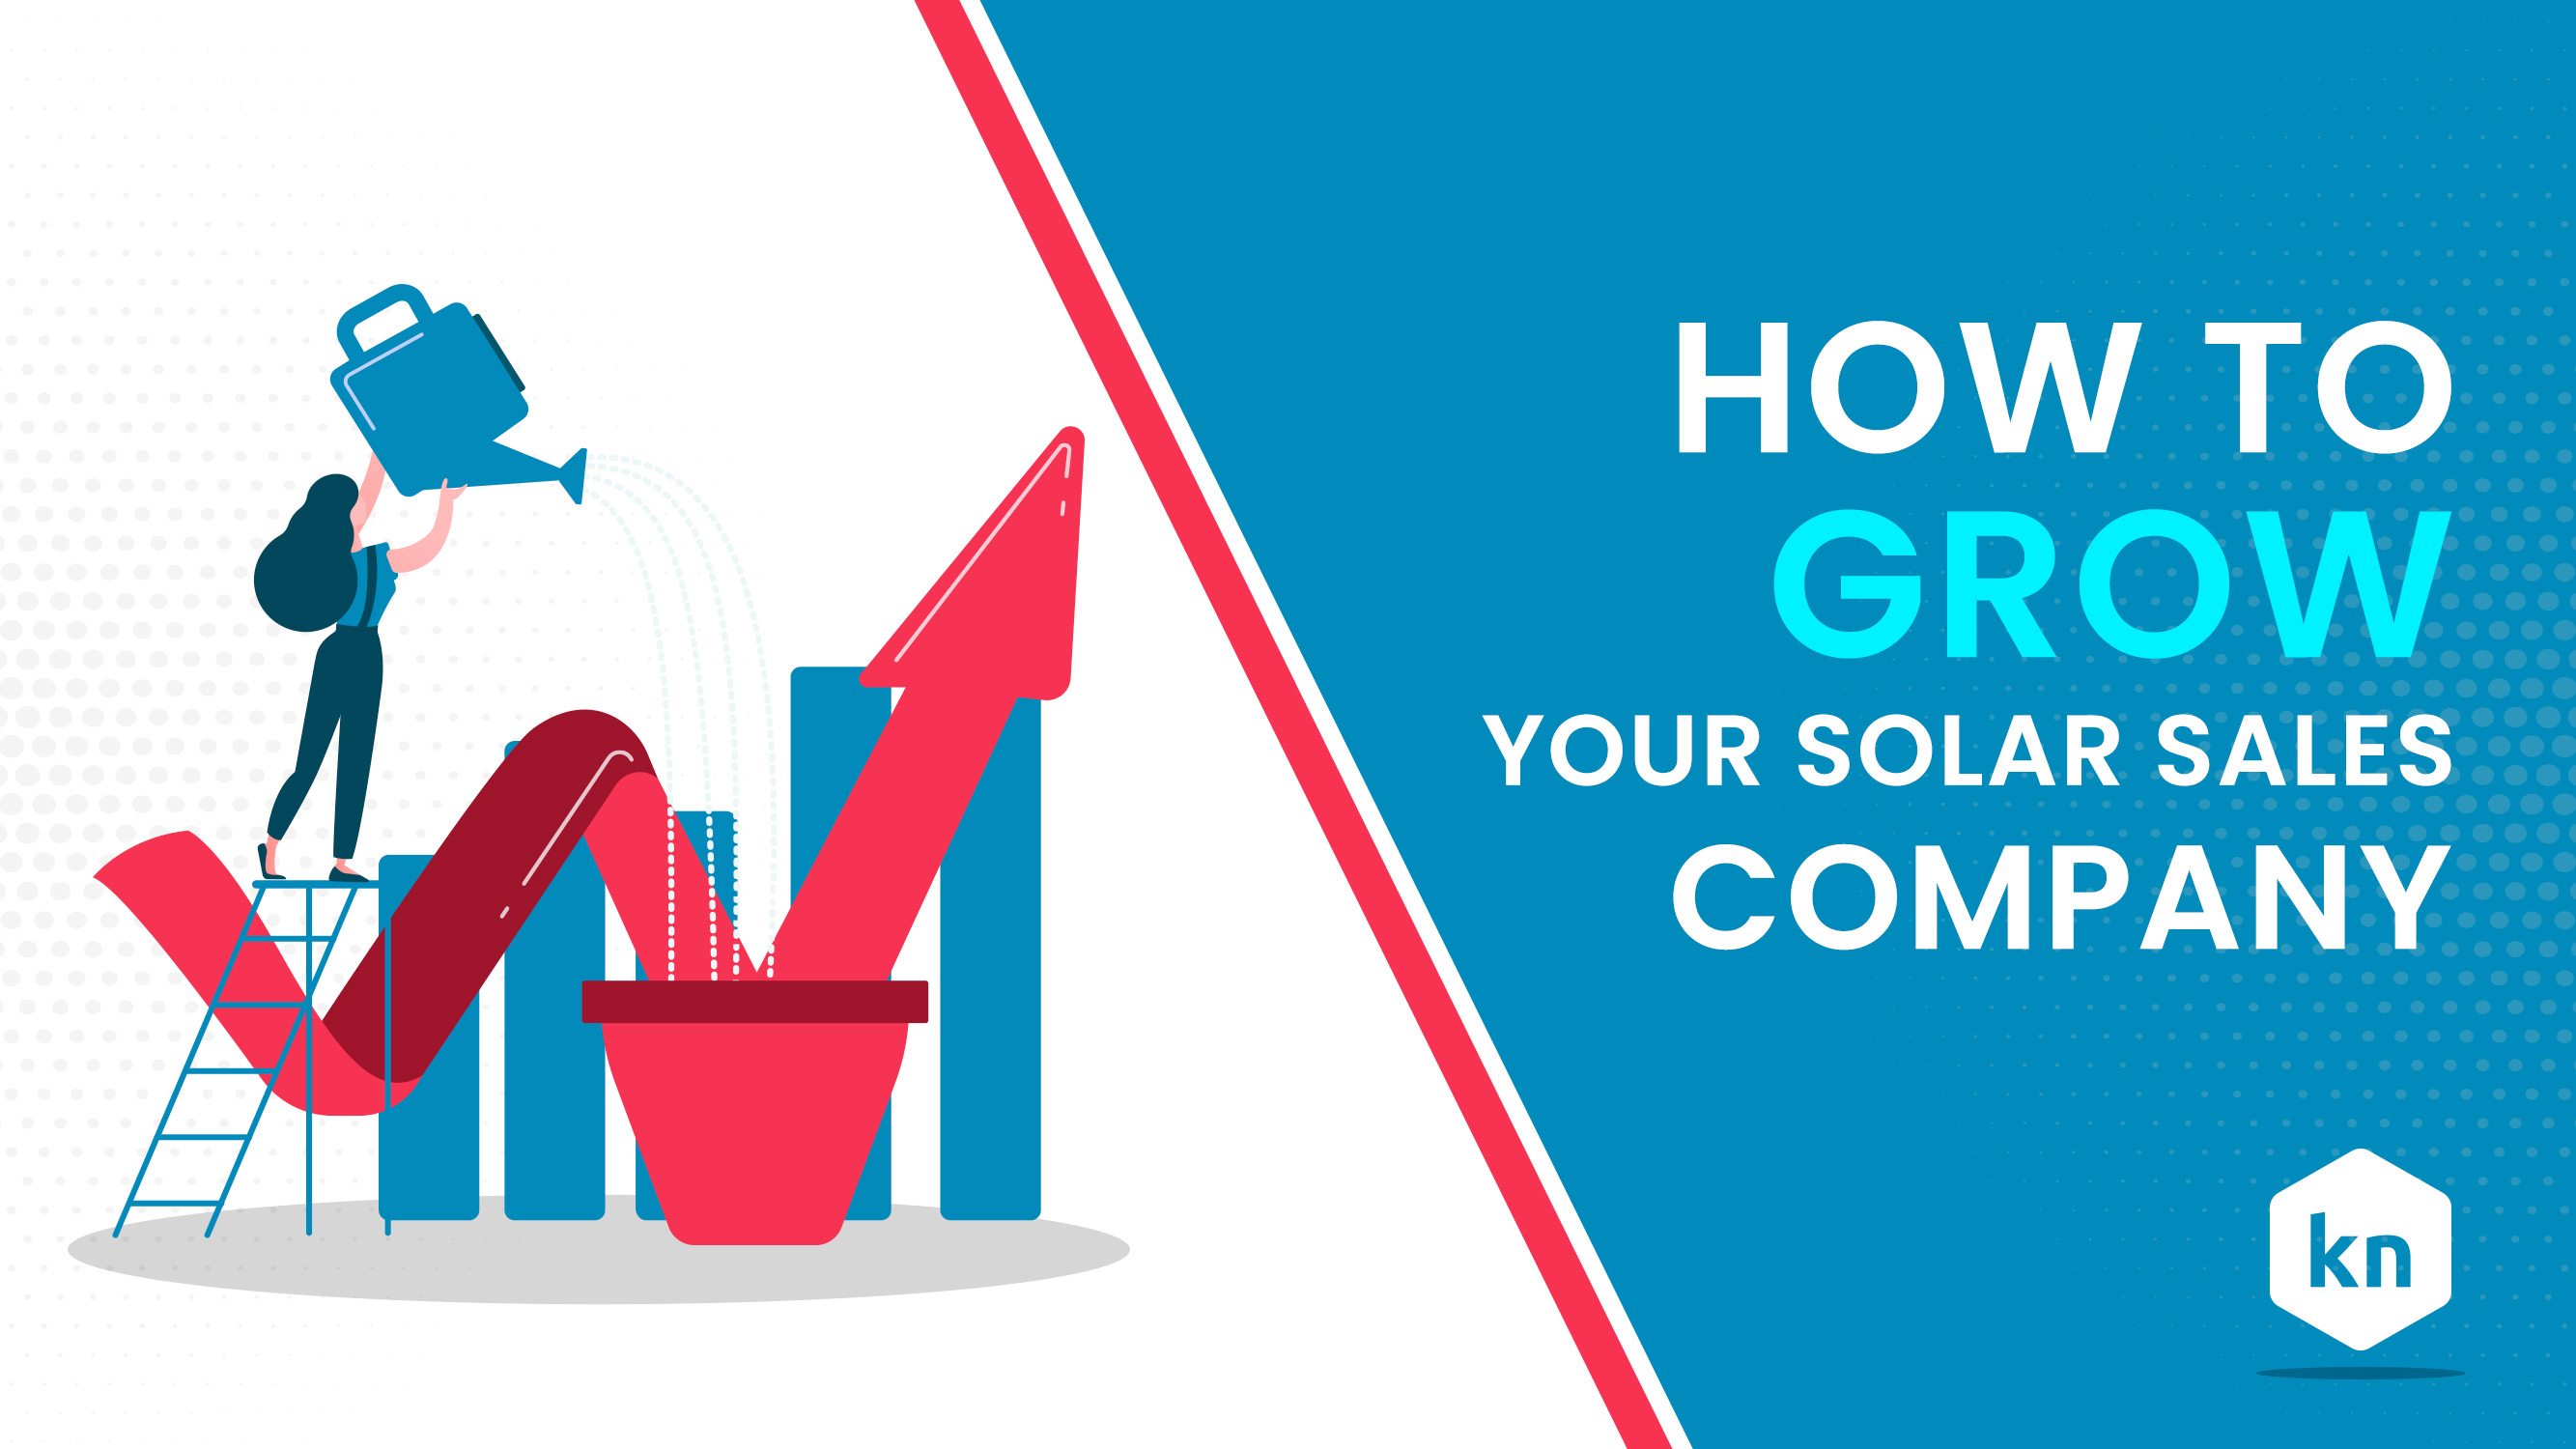 How To Grow Your Solar Sales Company